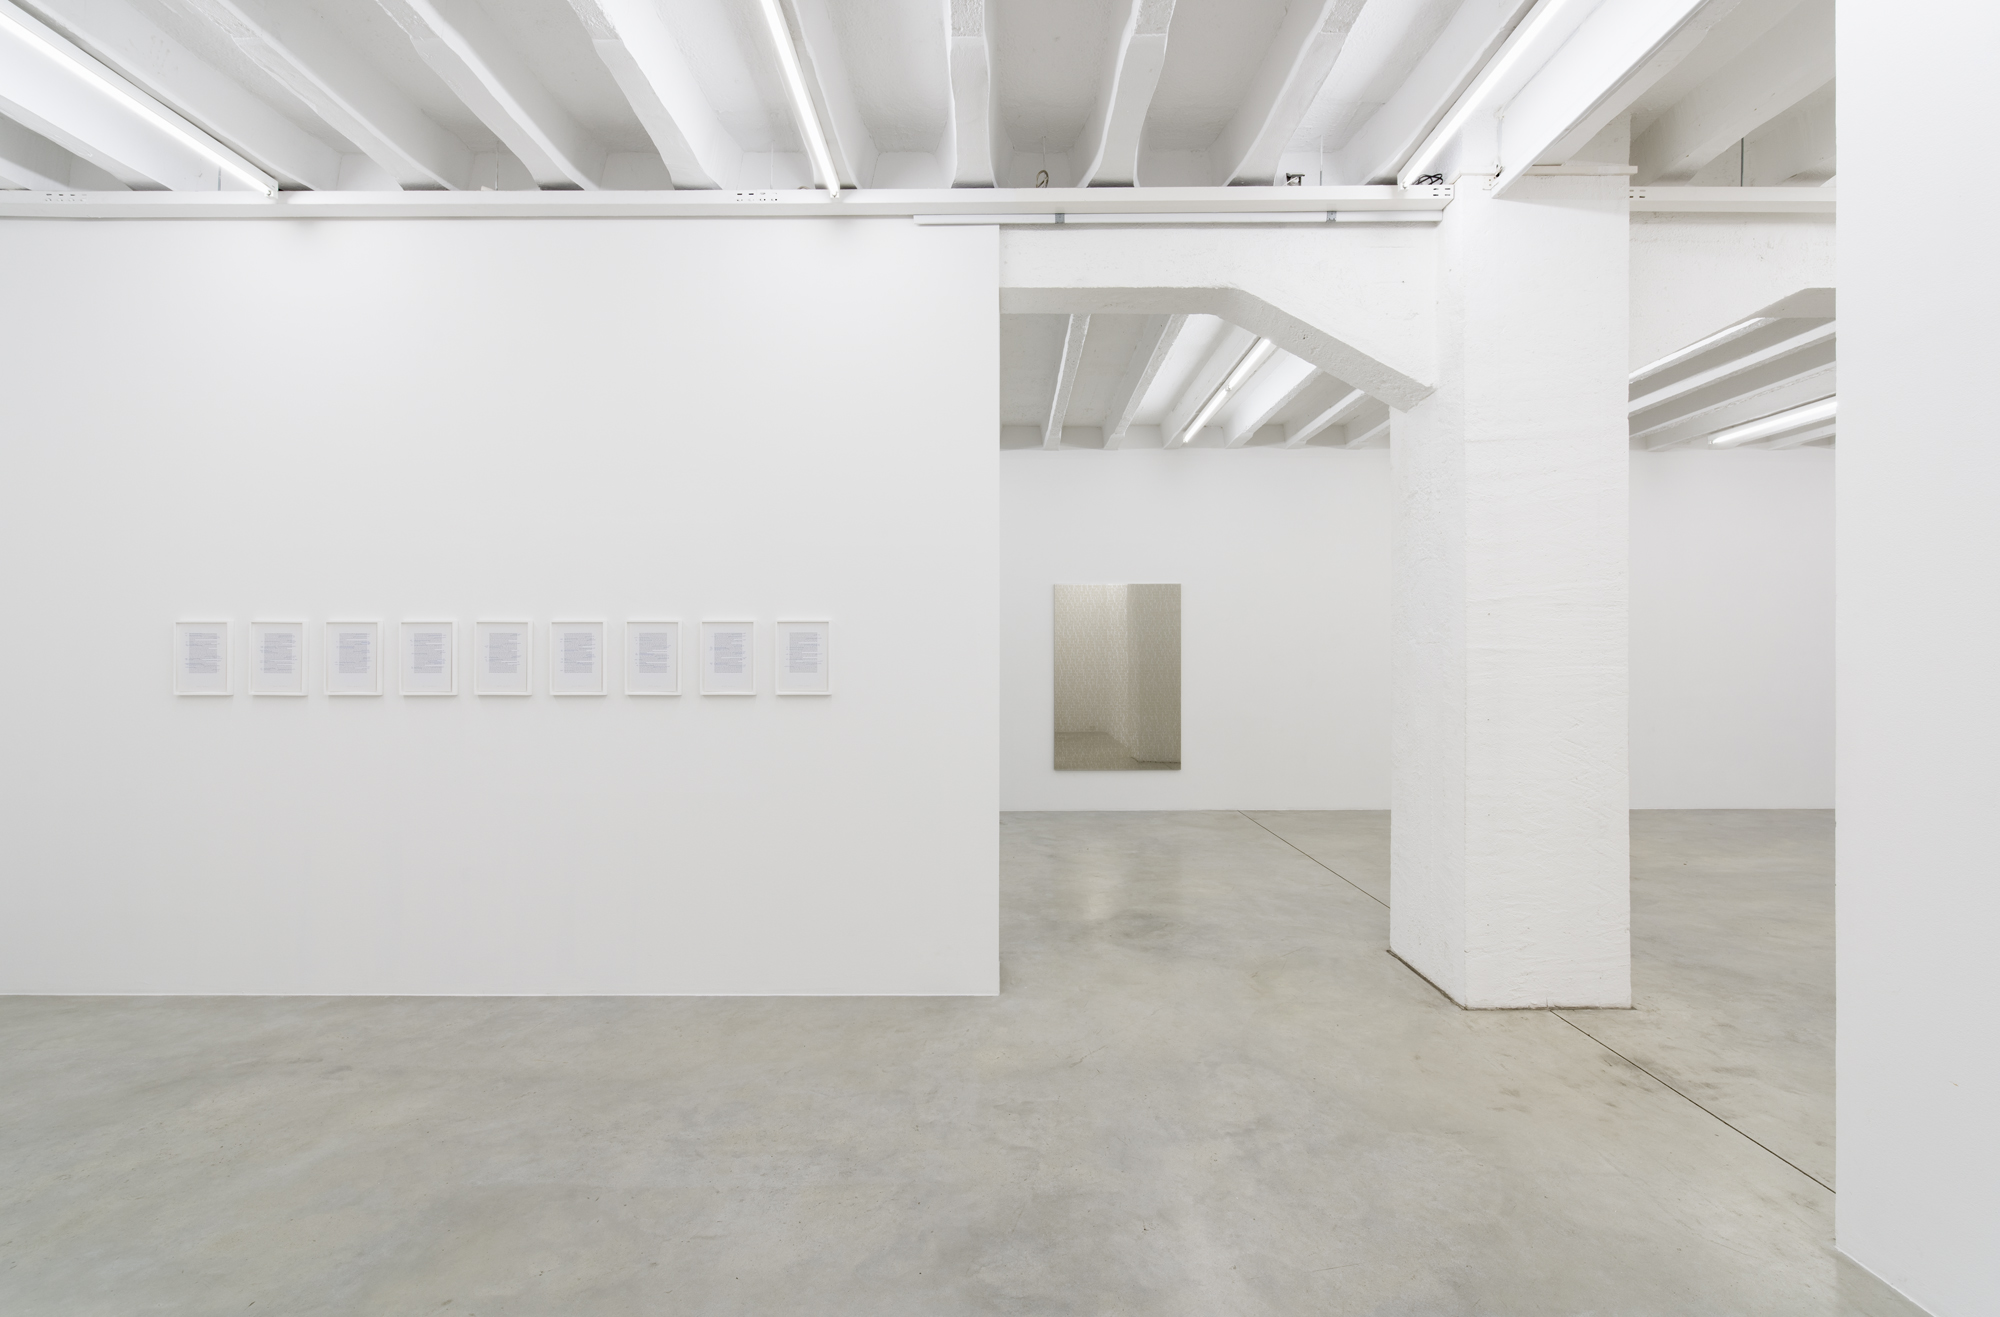 Exhibition view at Galerija Gregor Podnar, Berlin, 2017. Photo: Marcus Schneider